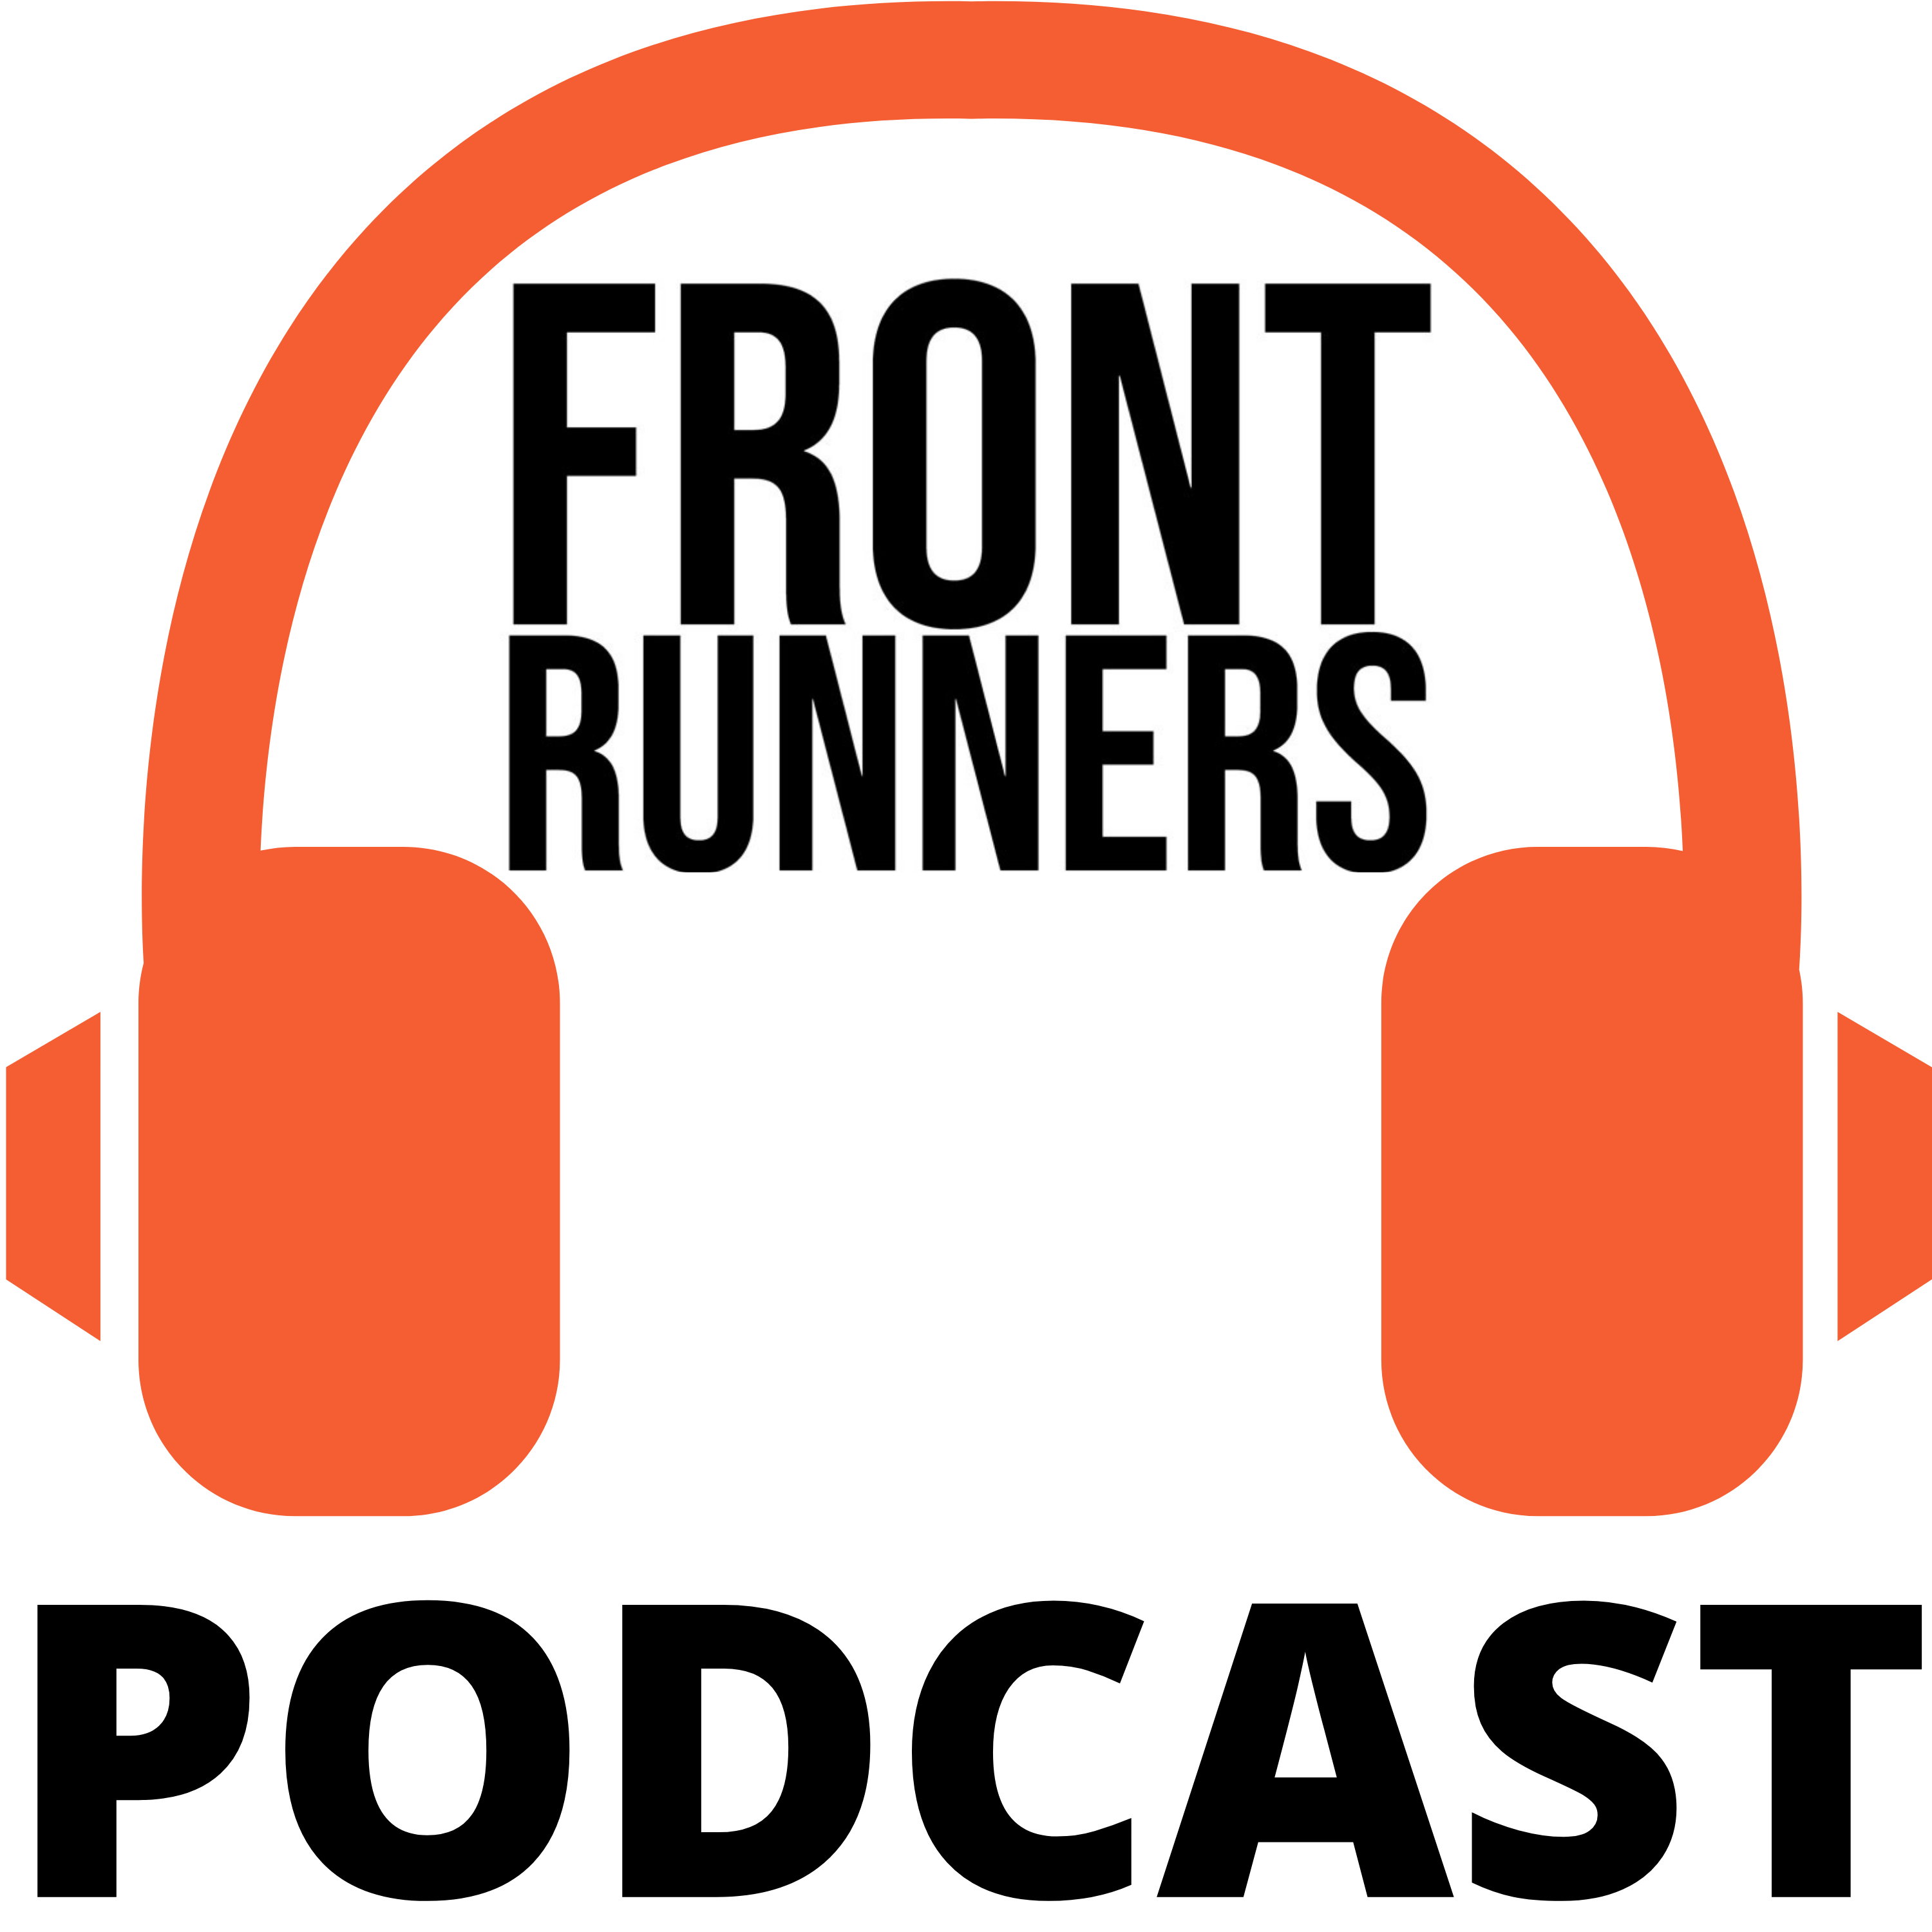 Frontrunners Podcast